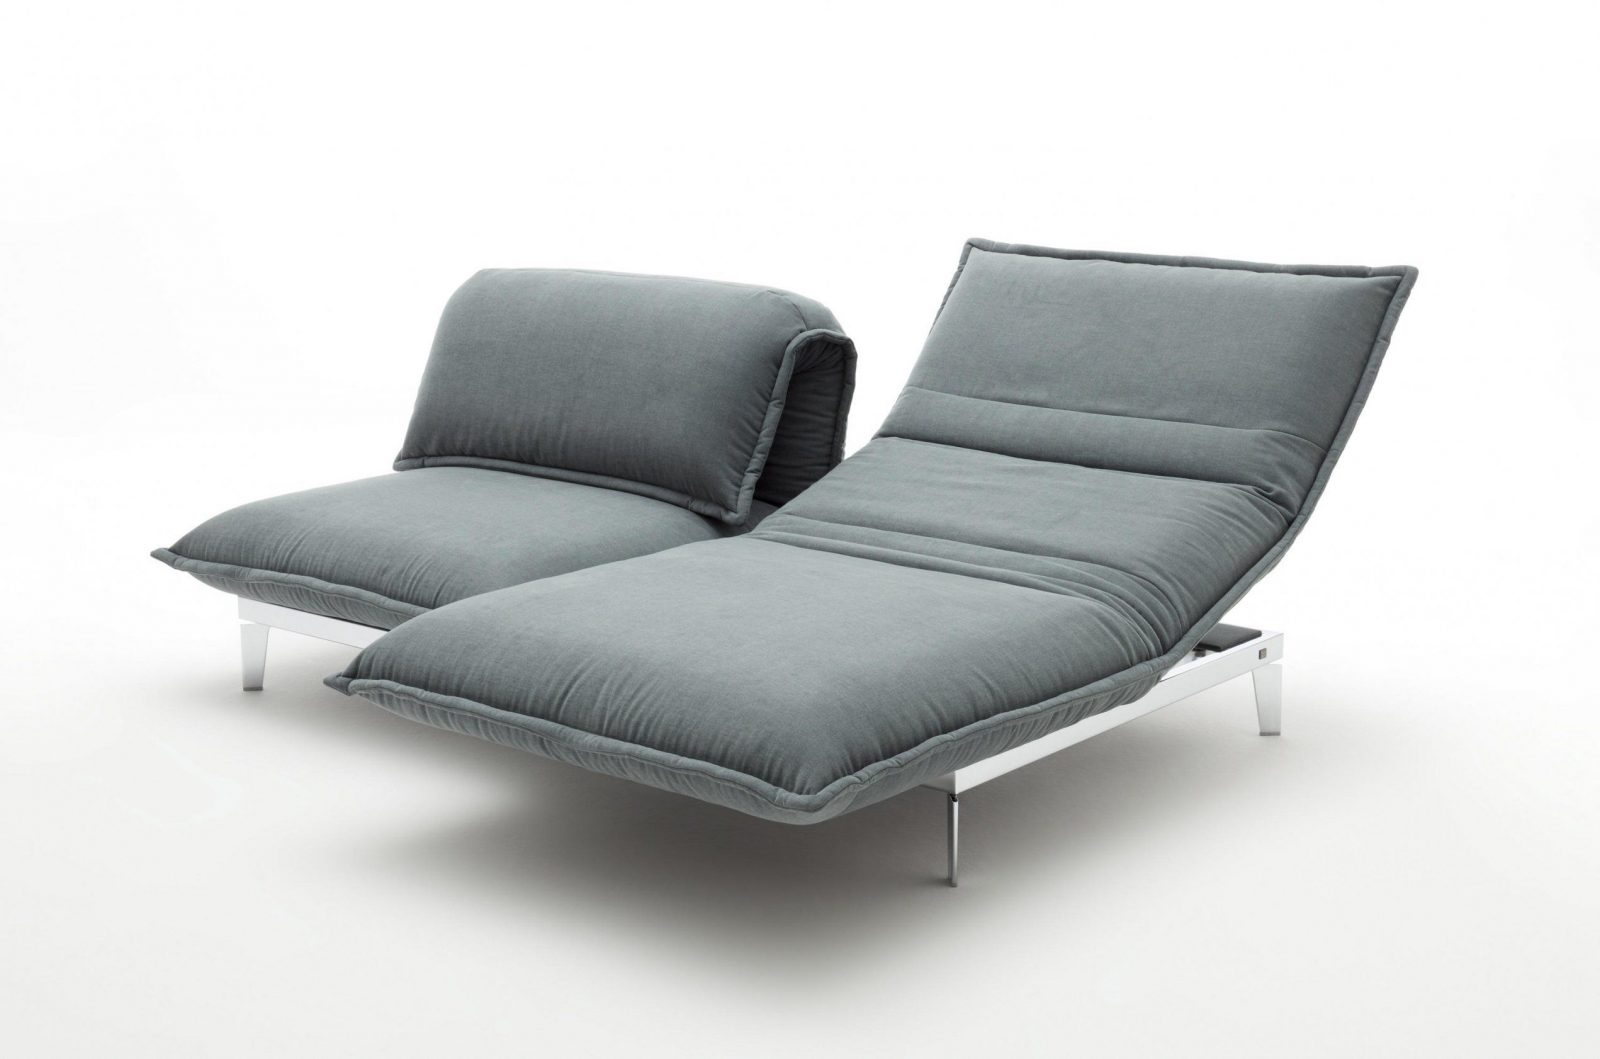 Rolf Benz Nova  Reclining Sofas From Rolf Benz  Architonic von Rolf Benz Sofa Nova Photo